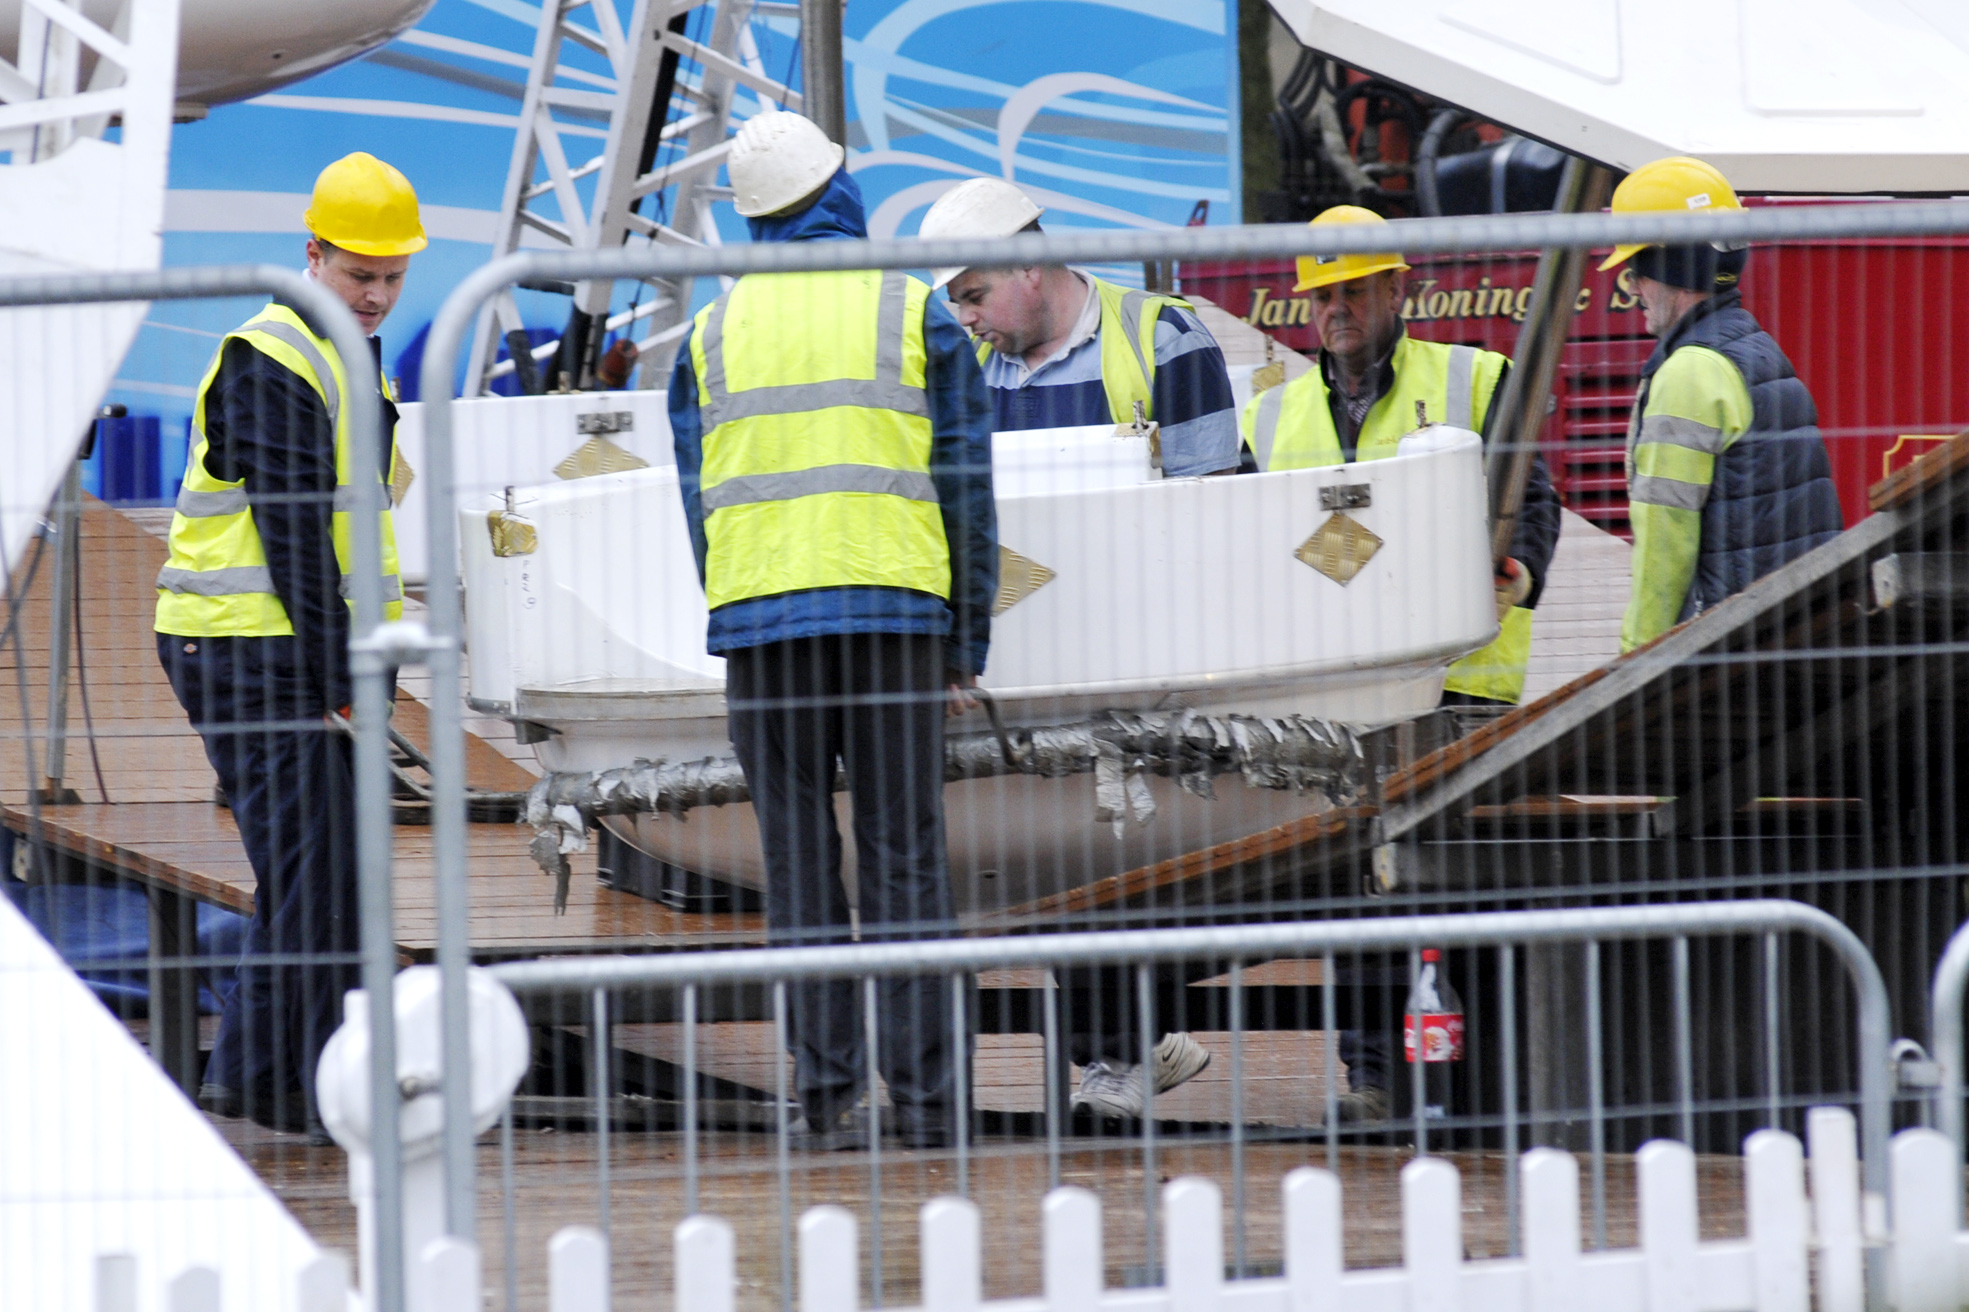 Work starts dismantling giant ferris wheel in Bolton town centre